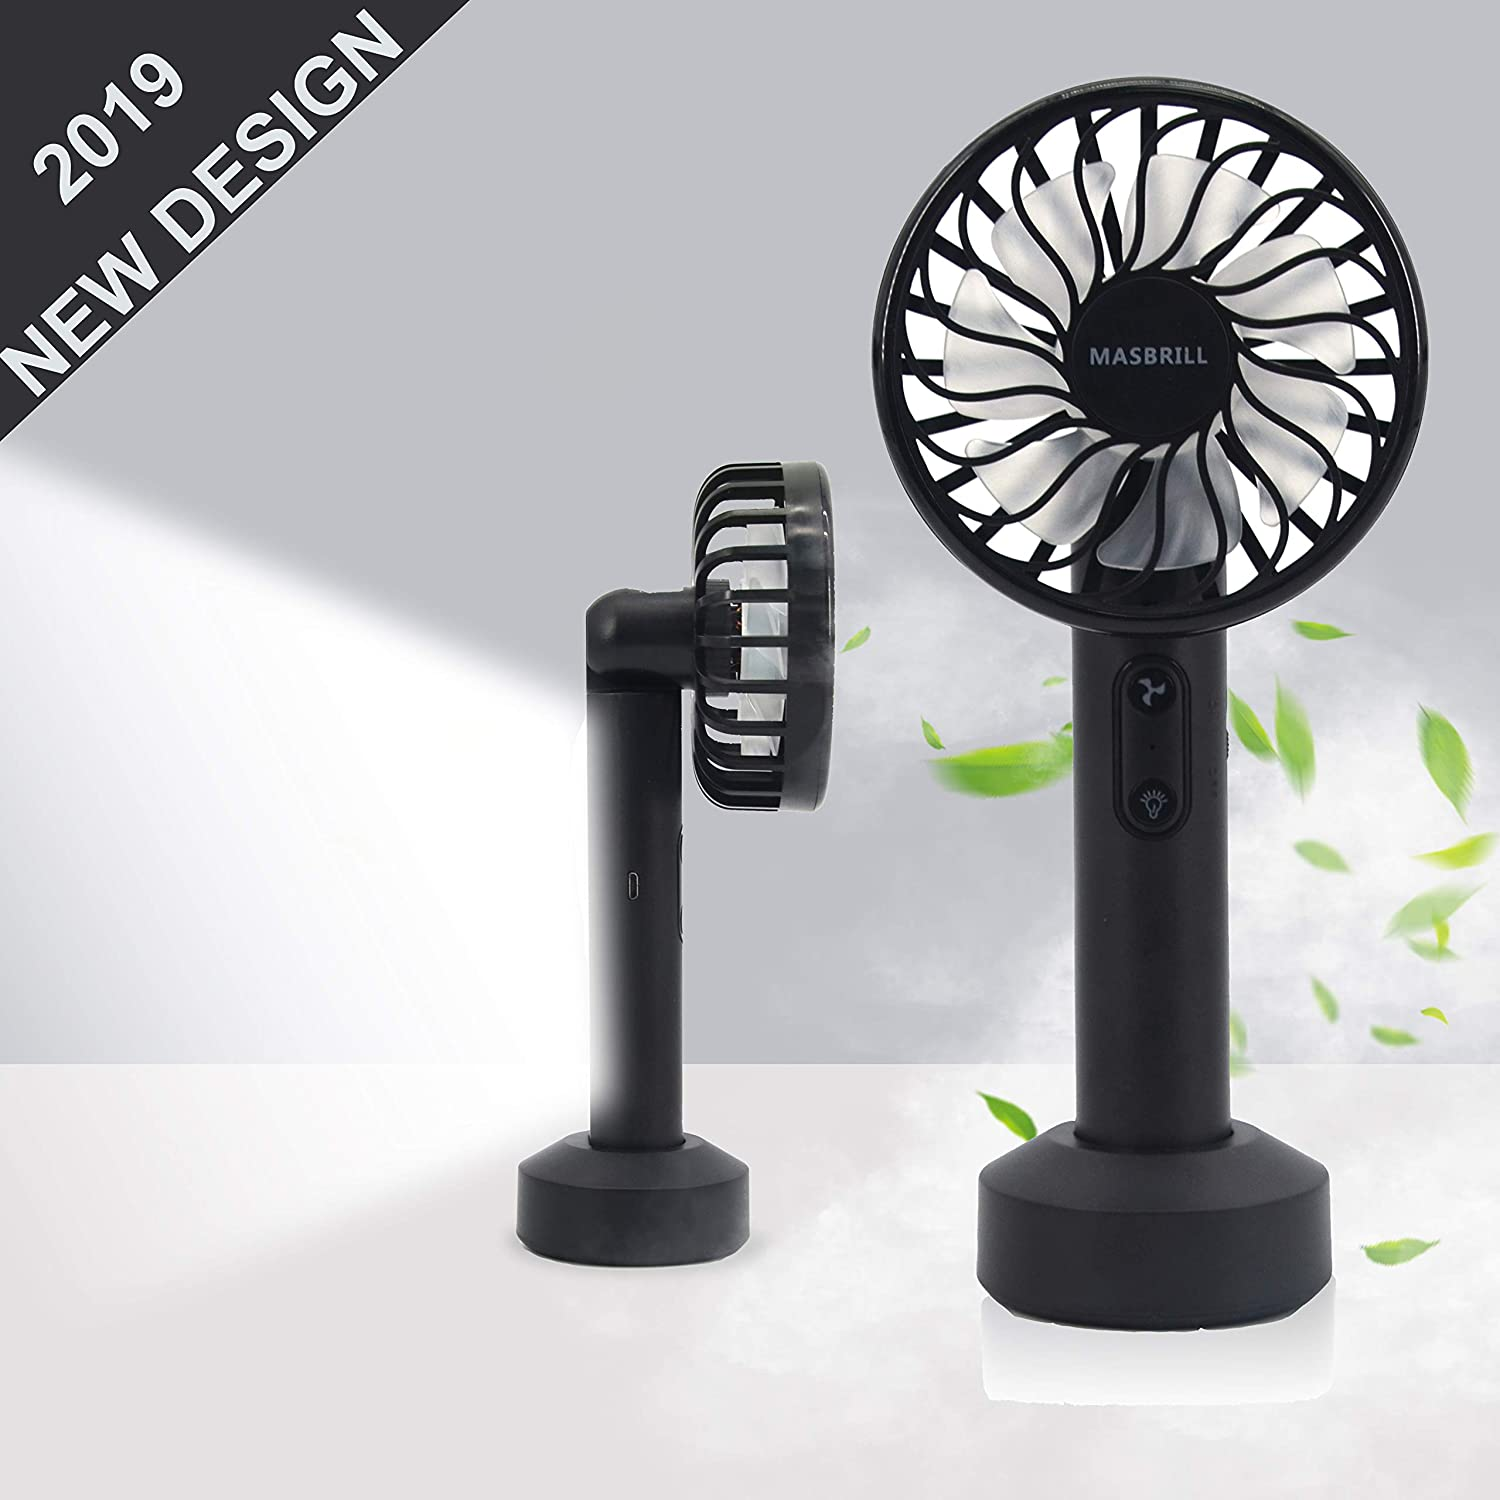 LED Portable Fan, Mini Electric Fan, USB Rechargeable Operated, Little Personal Fan for Handheld and Table Use, Make You Cool When at Travel, Outdoor Activities, Study, Office, Household.